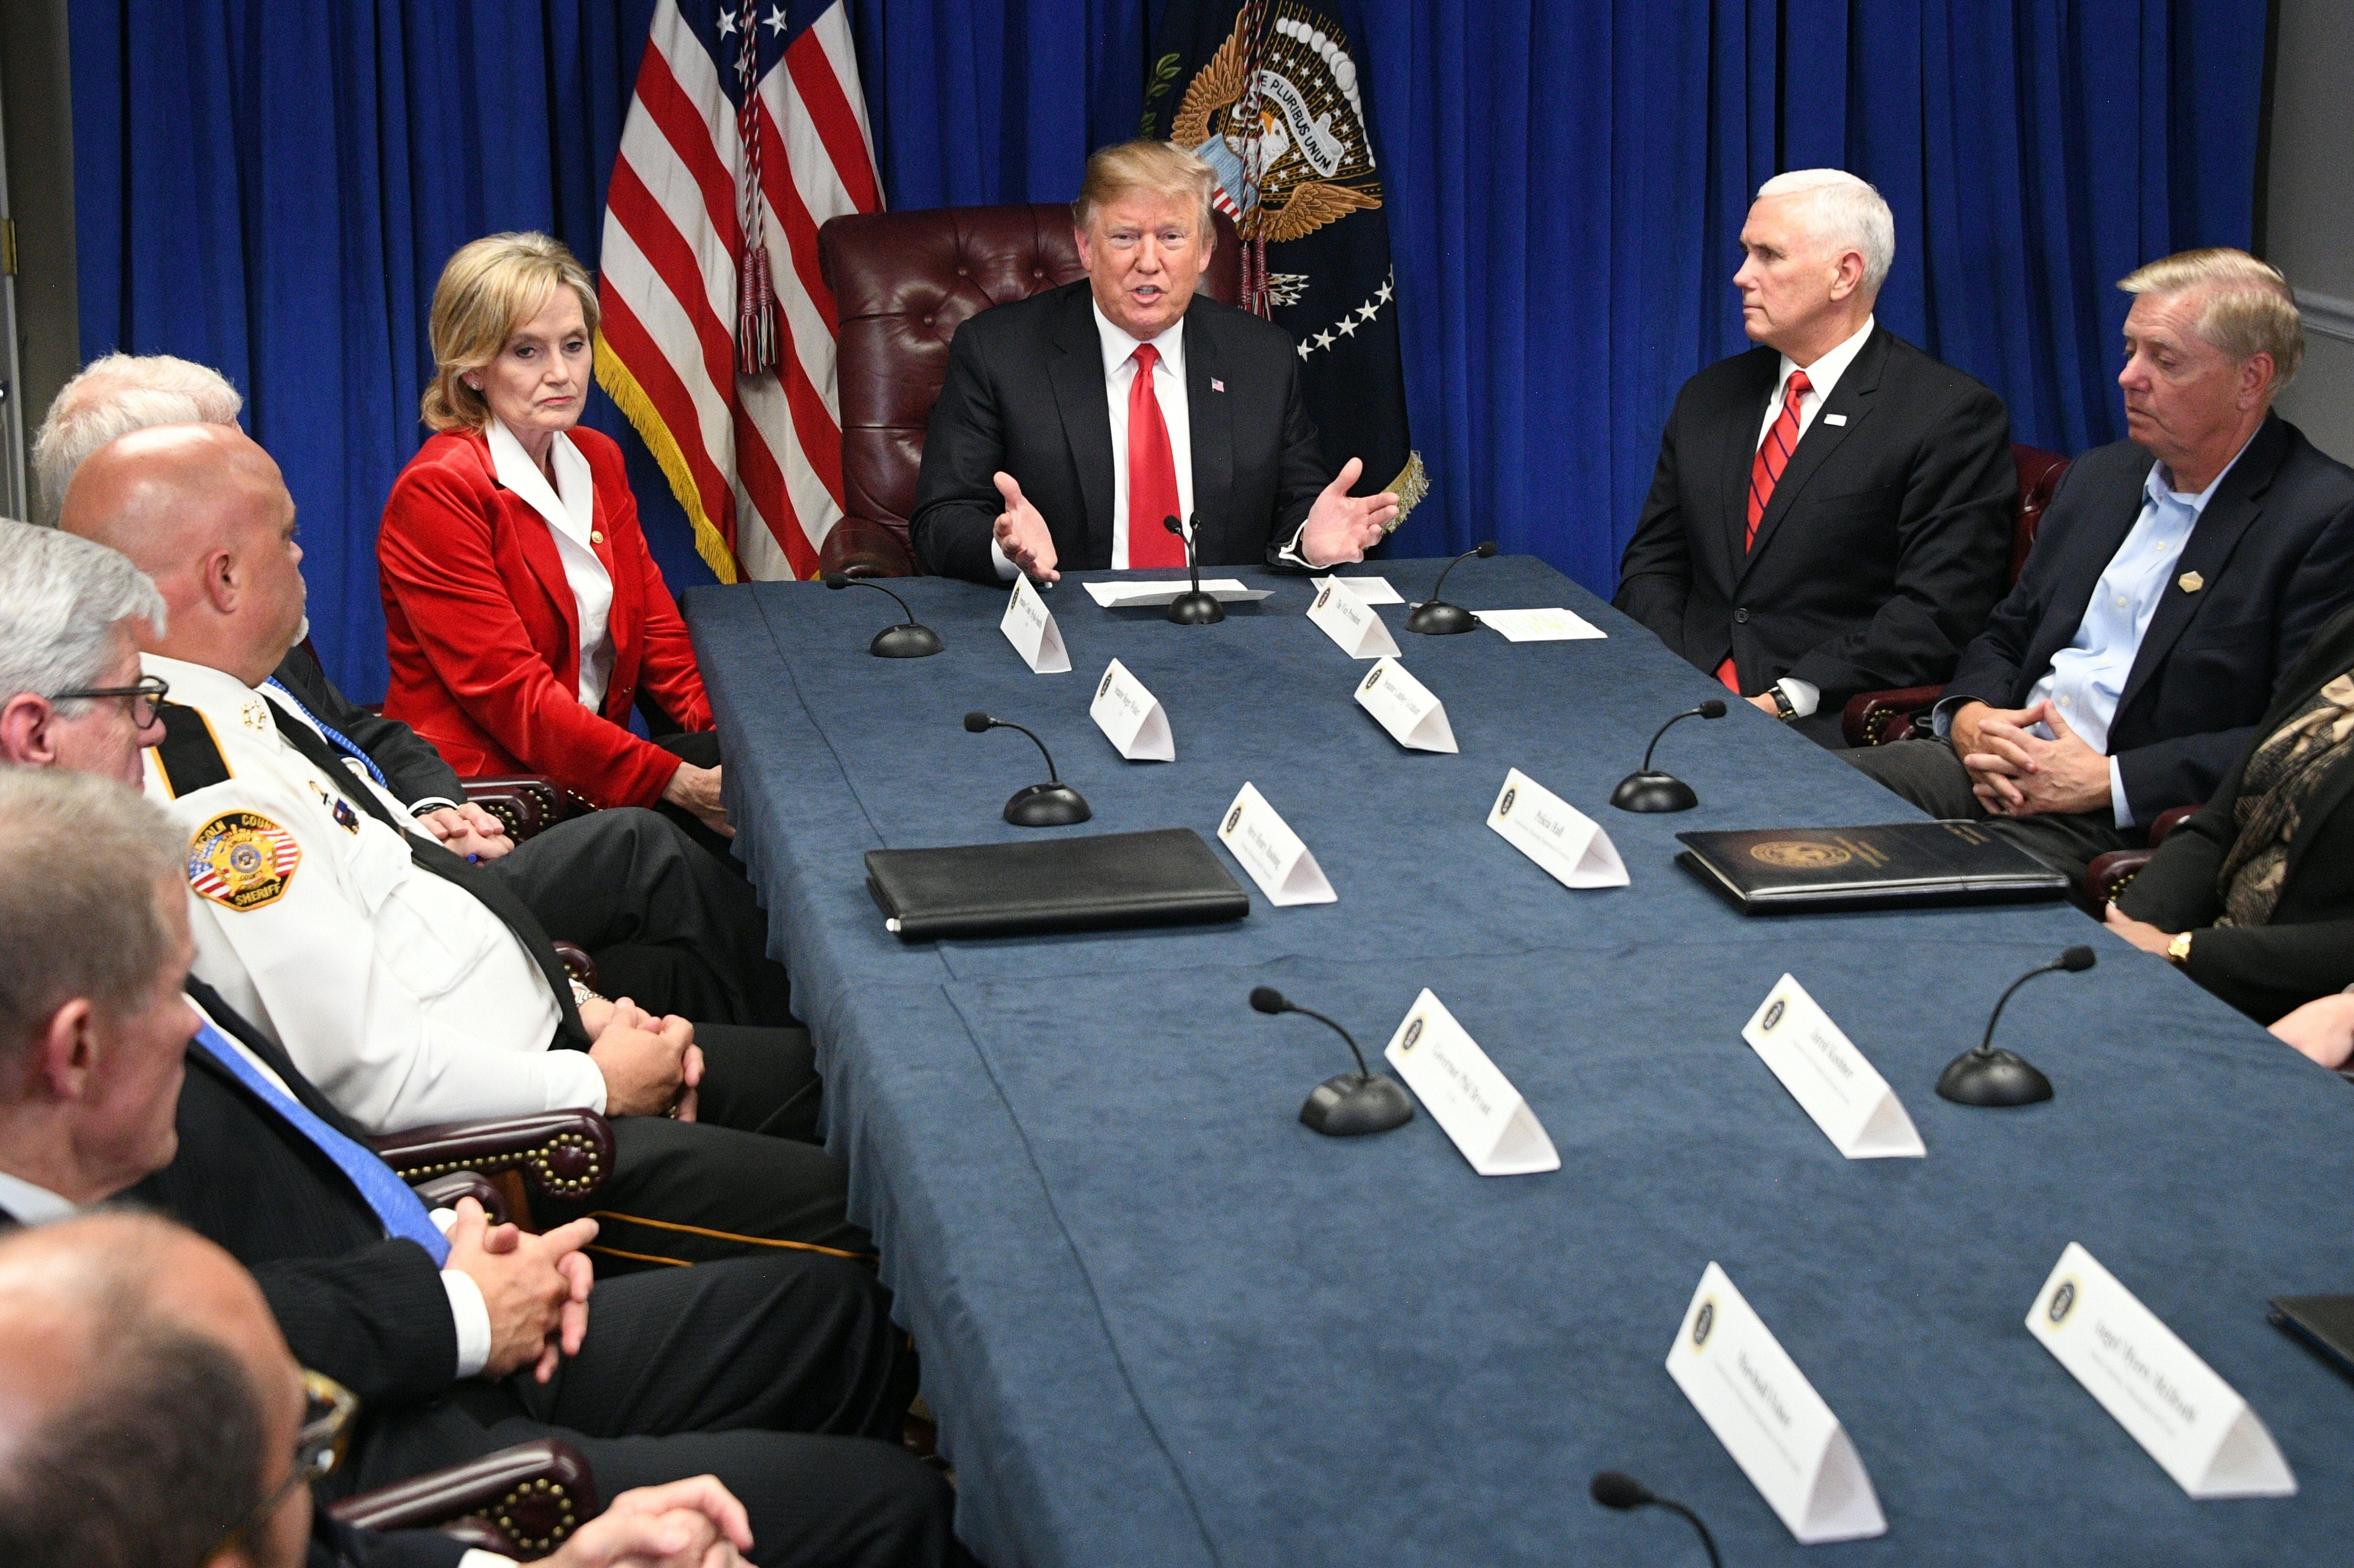 US President Donald Trump (C), Senator Cindy Hyde-Smith (L), Vice President Mike Pence (2ndfrom R) and Senator Lindsey Graham (R) participate in a roundtable on the FIRST STEP Act in Gulfport, Mississippi on November 26, 2018. (JIM WATSON/AFP/Getty Images)